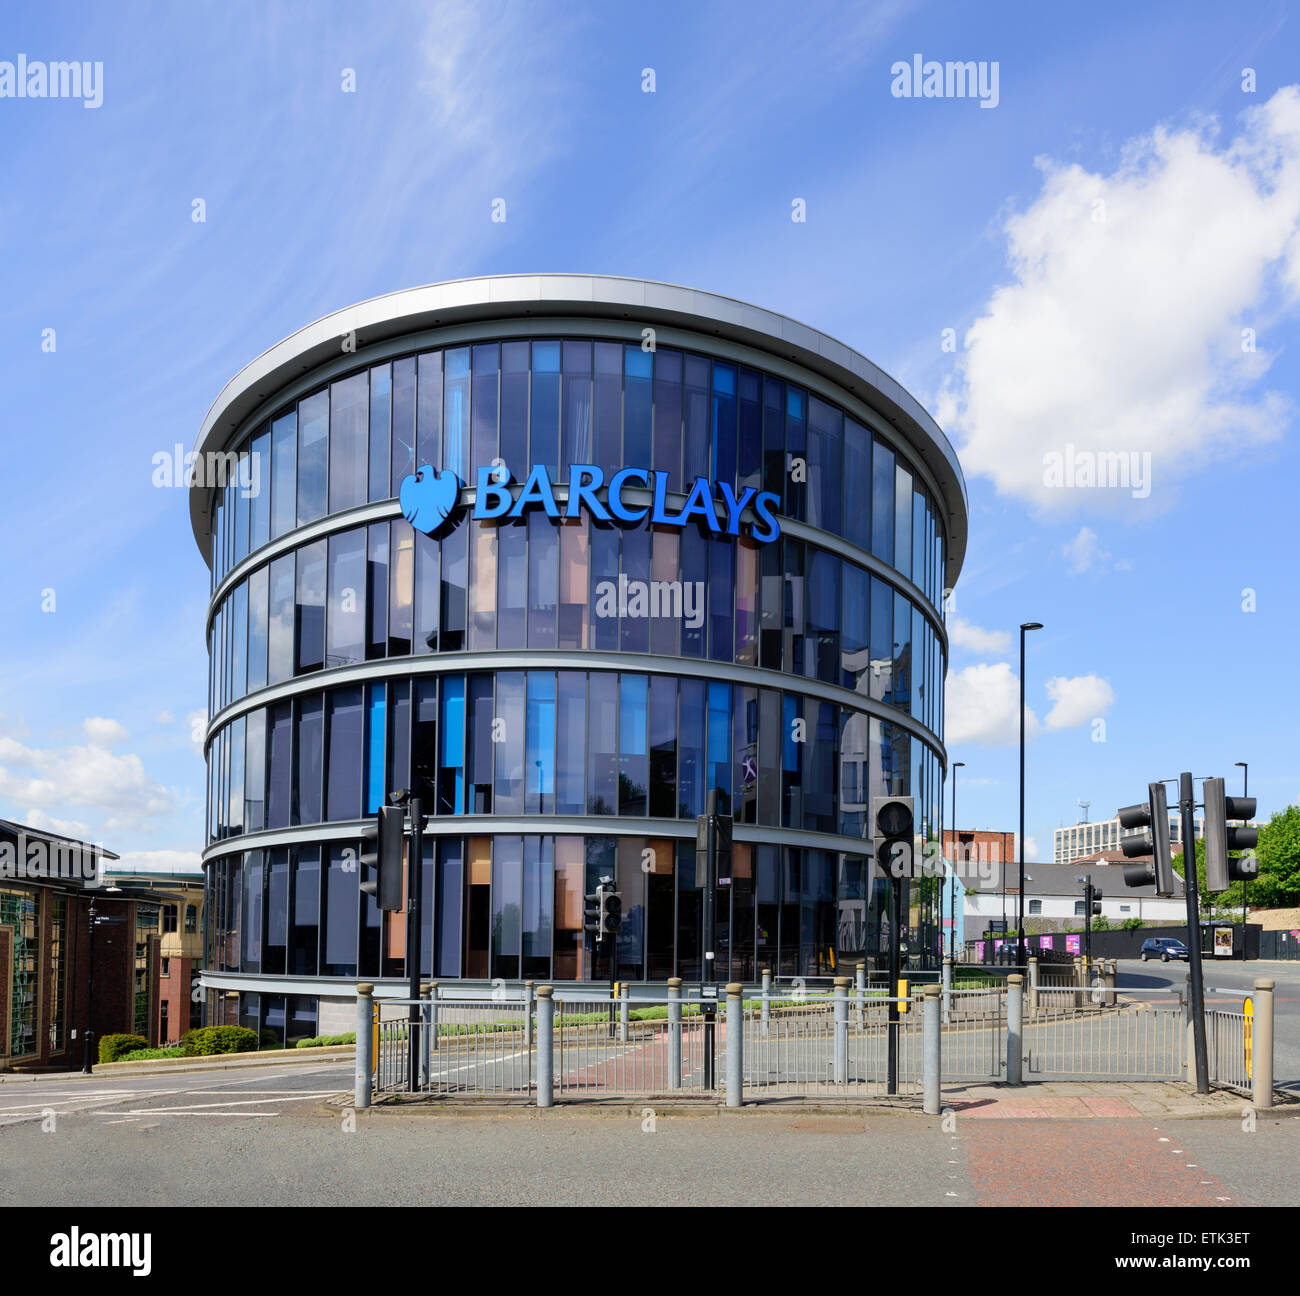 Barclays Corporate Banking Building - Stock Image